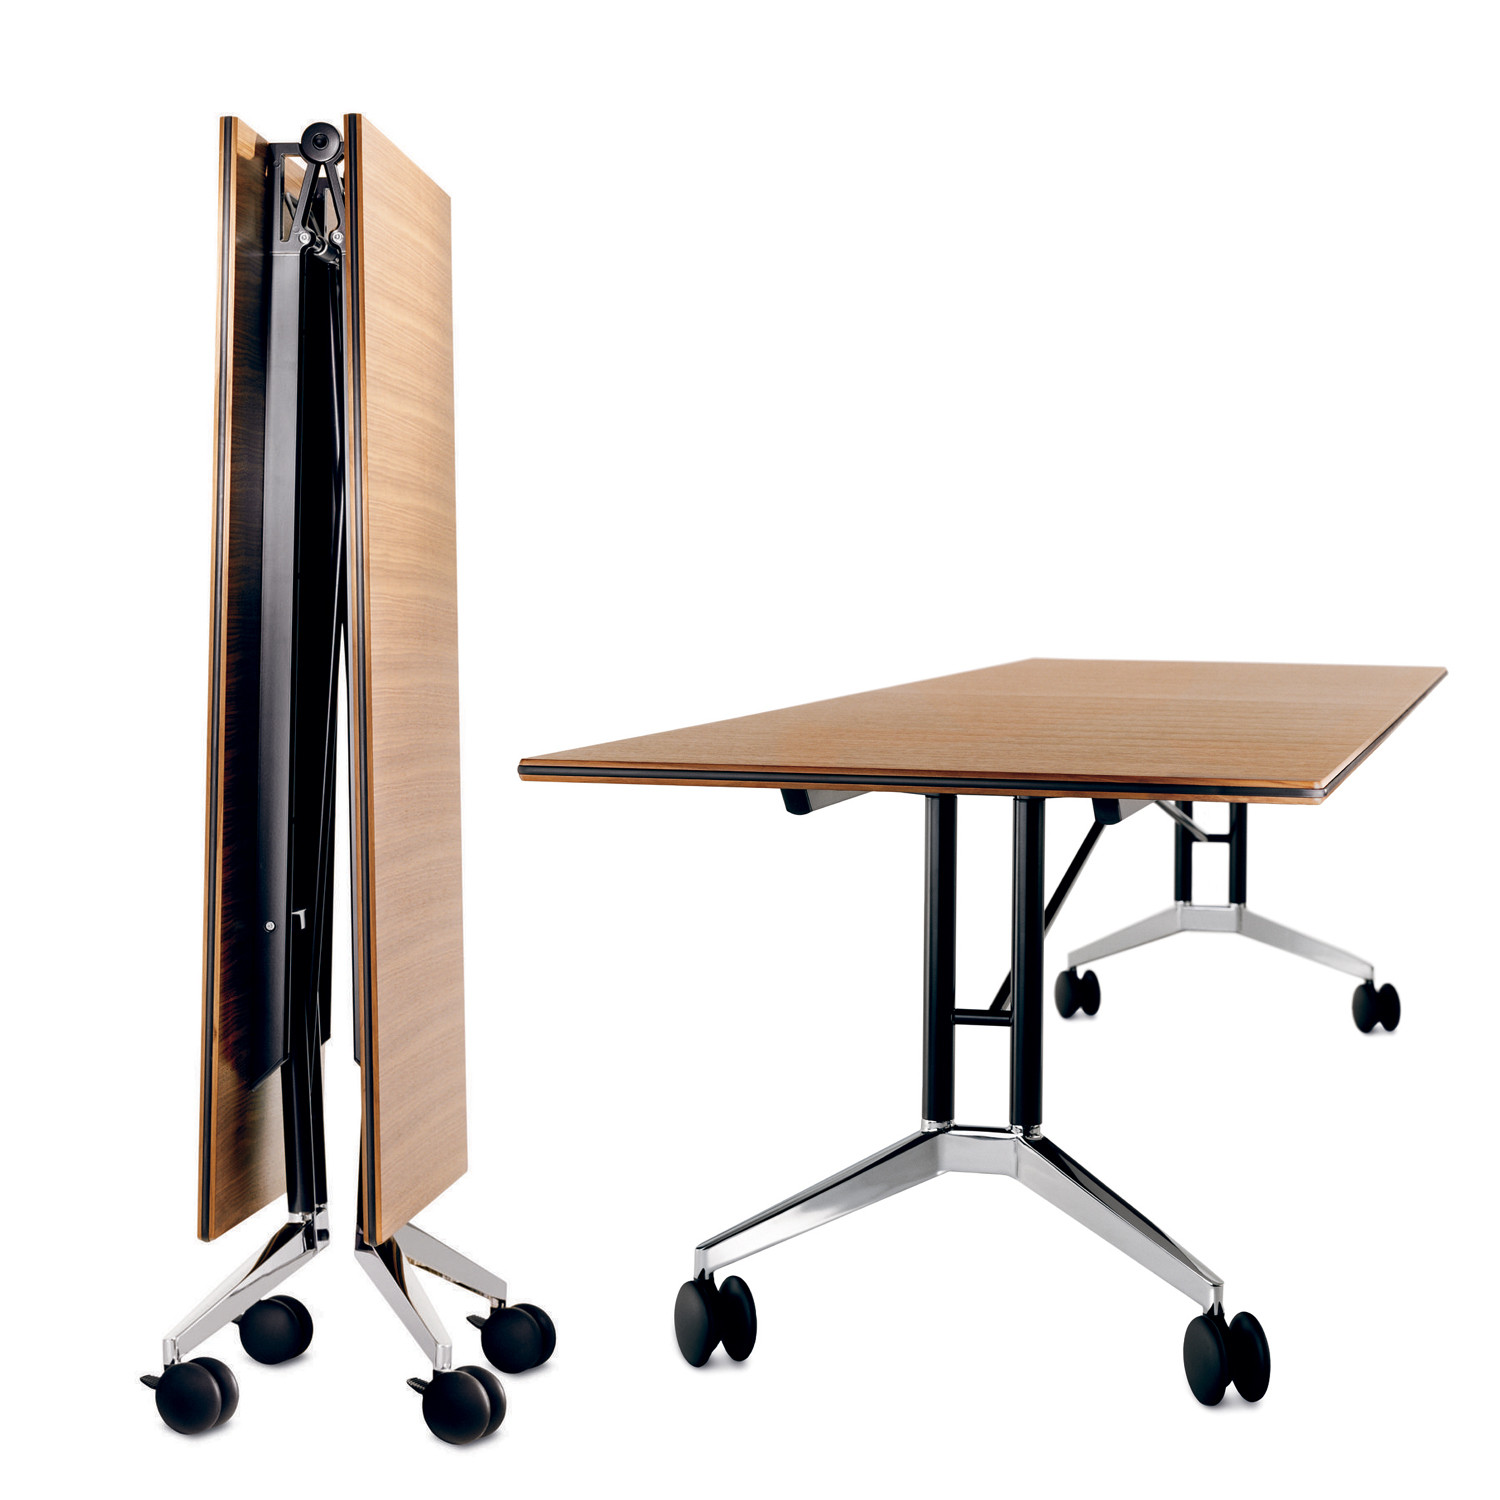 Portable Conference Tables - Portable conference table